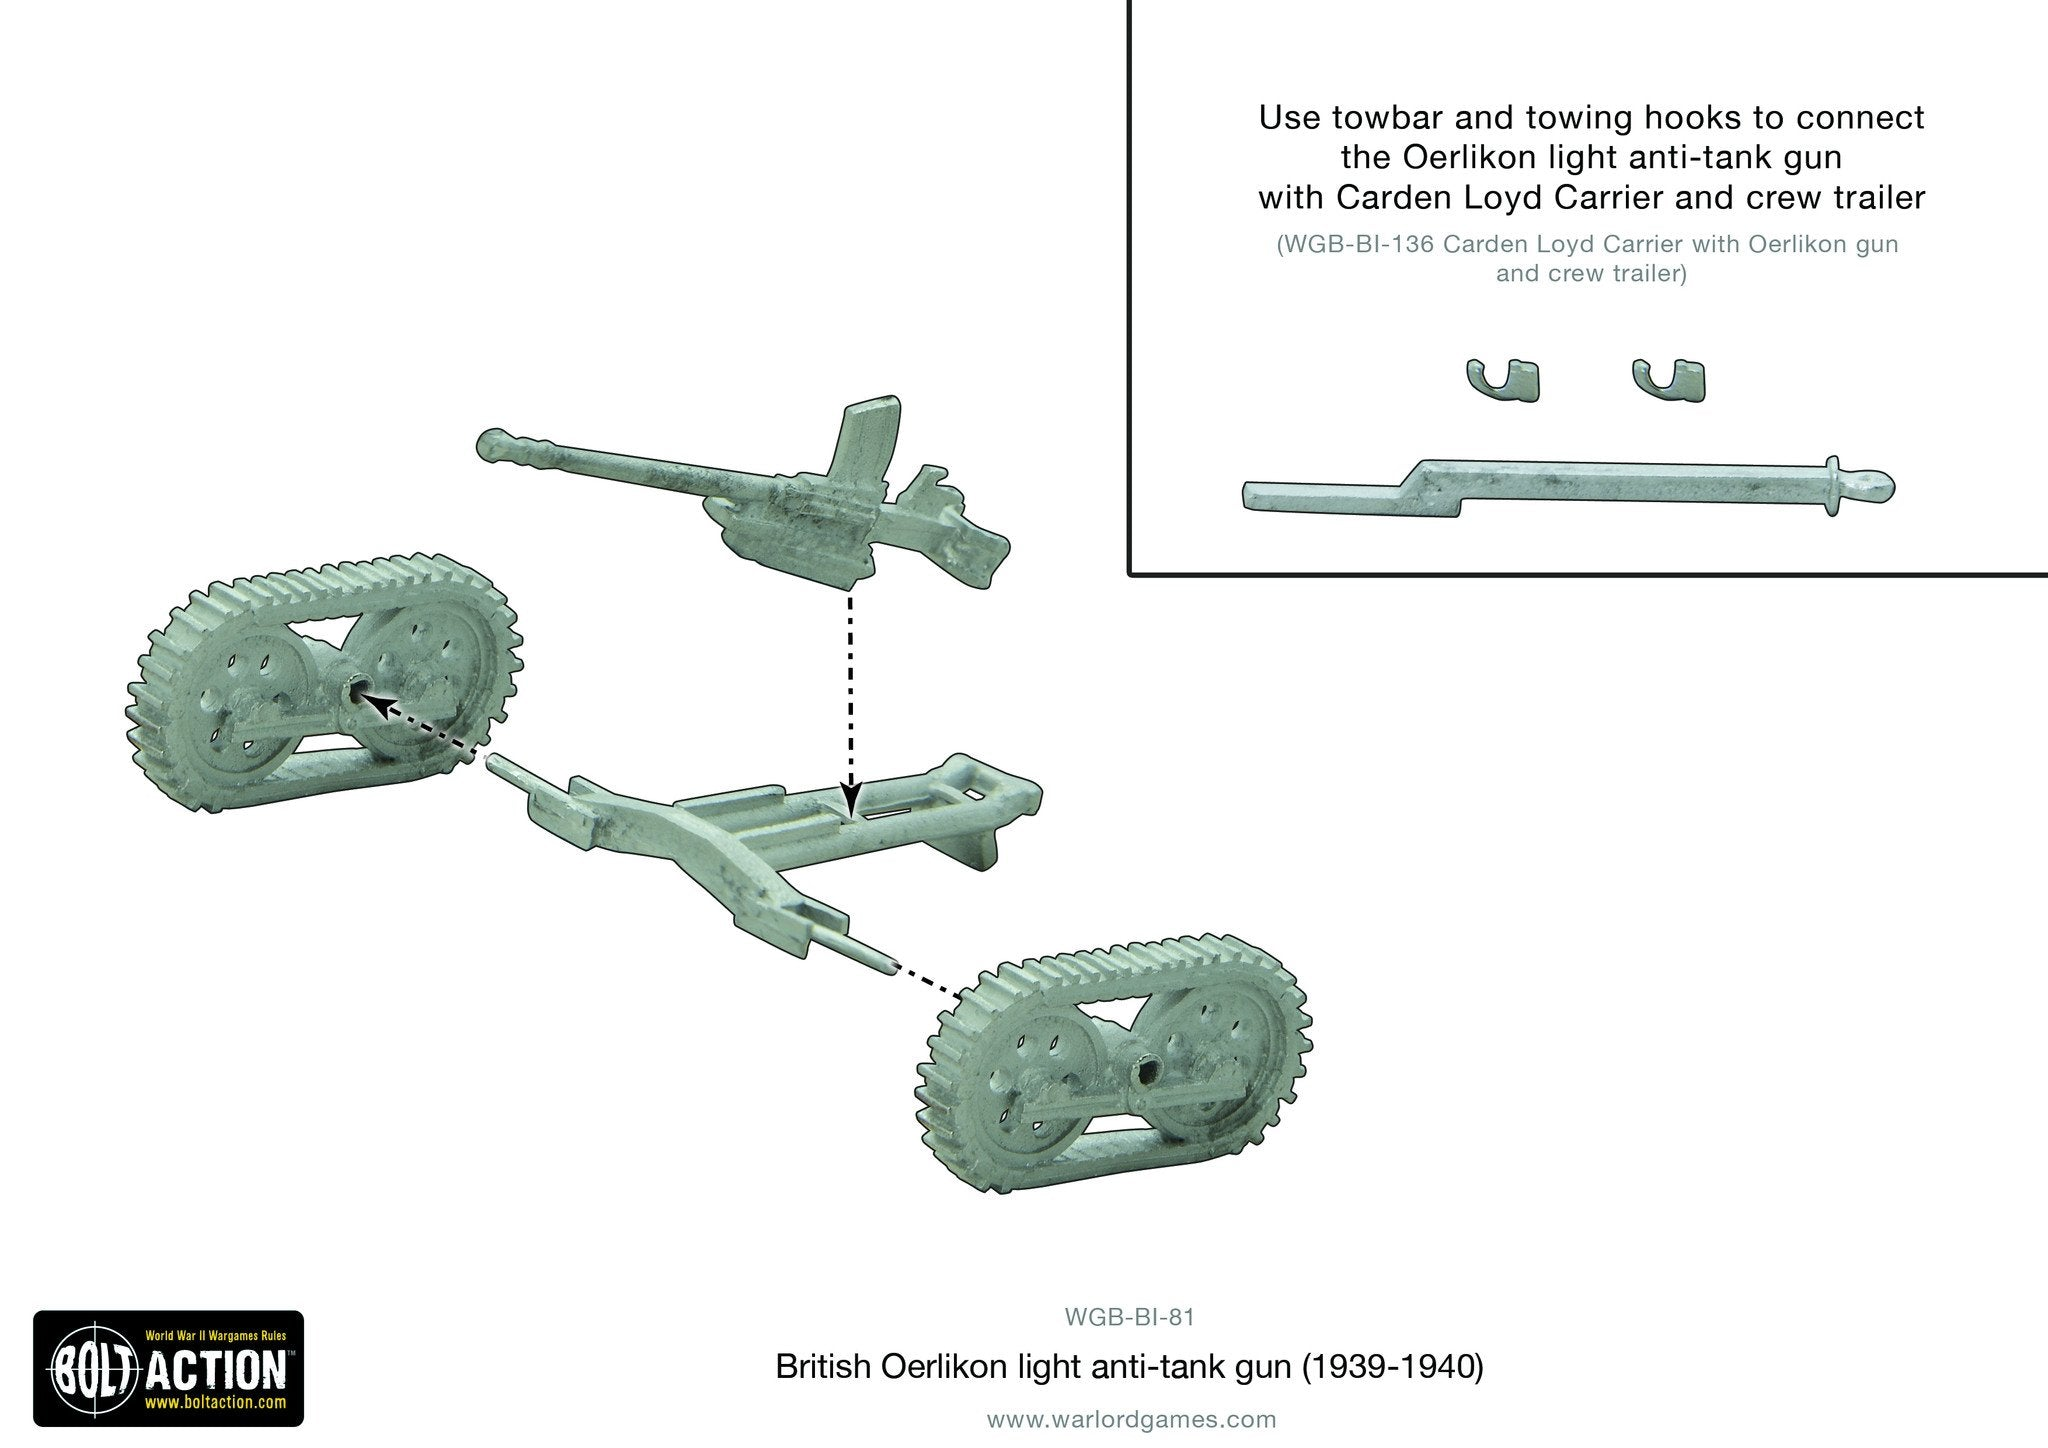 British Oerlikon light anti-tank gun (1939-40)